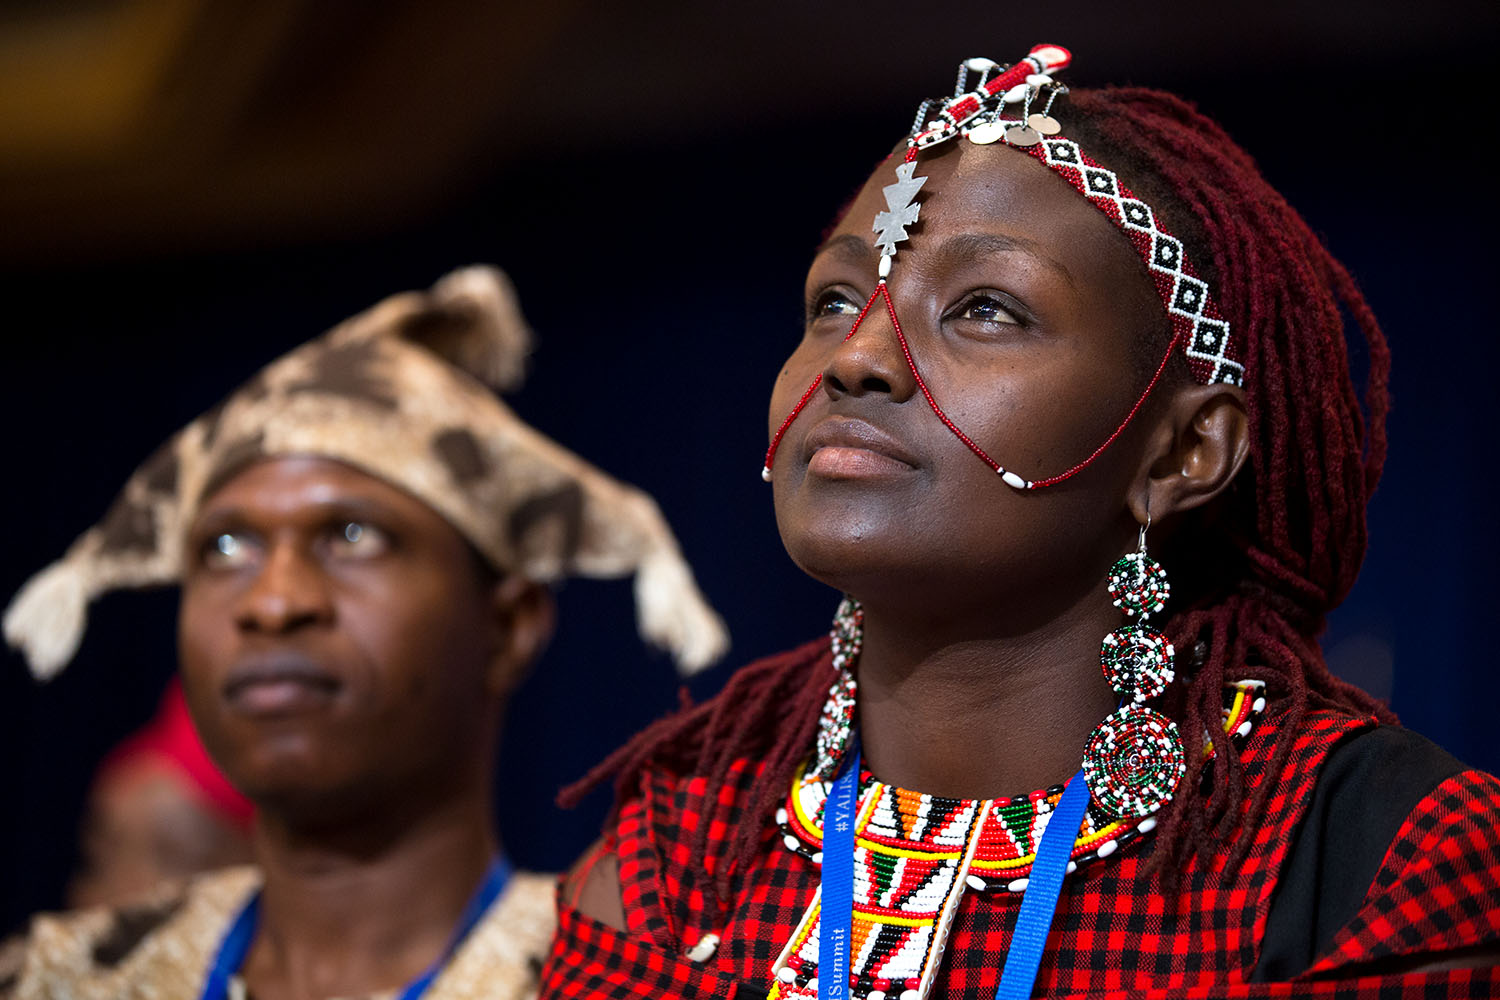 Josephine Kulea (Kenya) and audience members listen as President Barack Obama delivers remarks during a Young African Leaders Initiative (YALI) town hall in Washington, D.C., July 28, 2014. (Official White House Photo by Pete Souza)